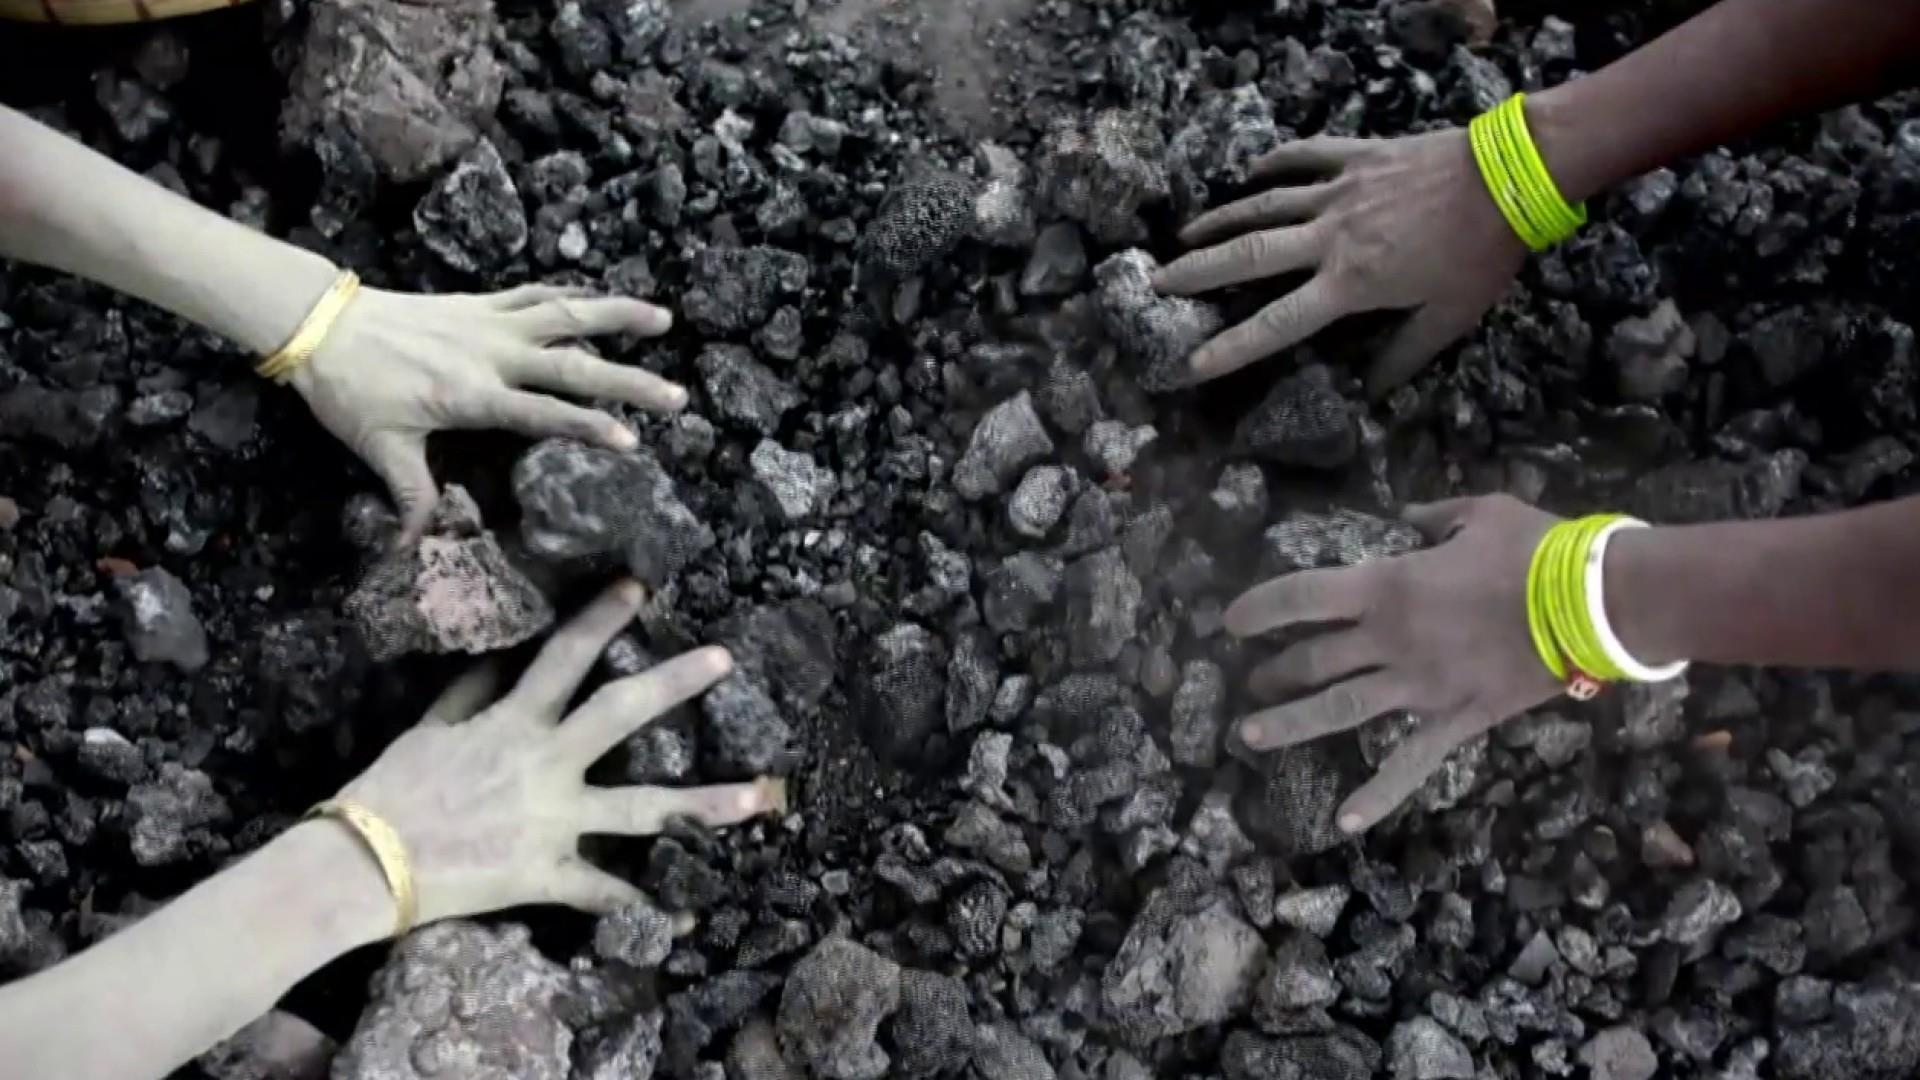 Trump following through on campaign promise to bring back coal